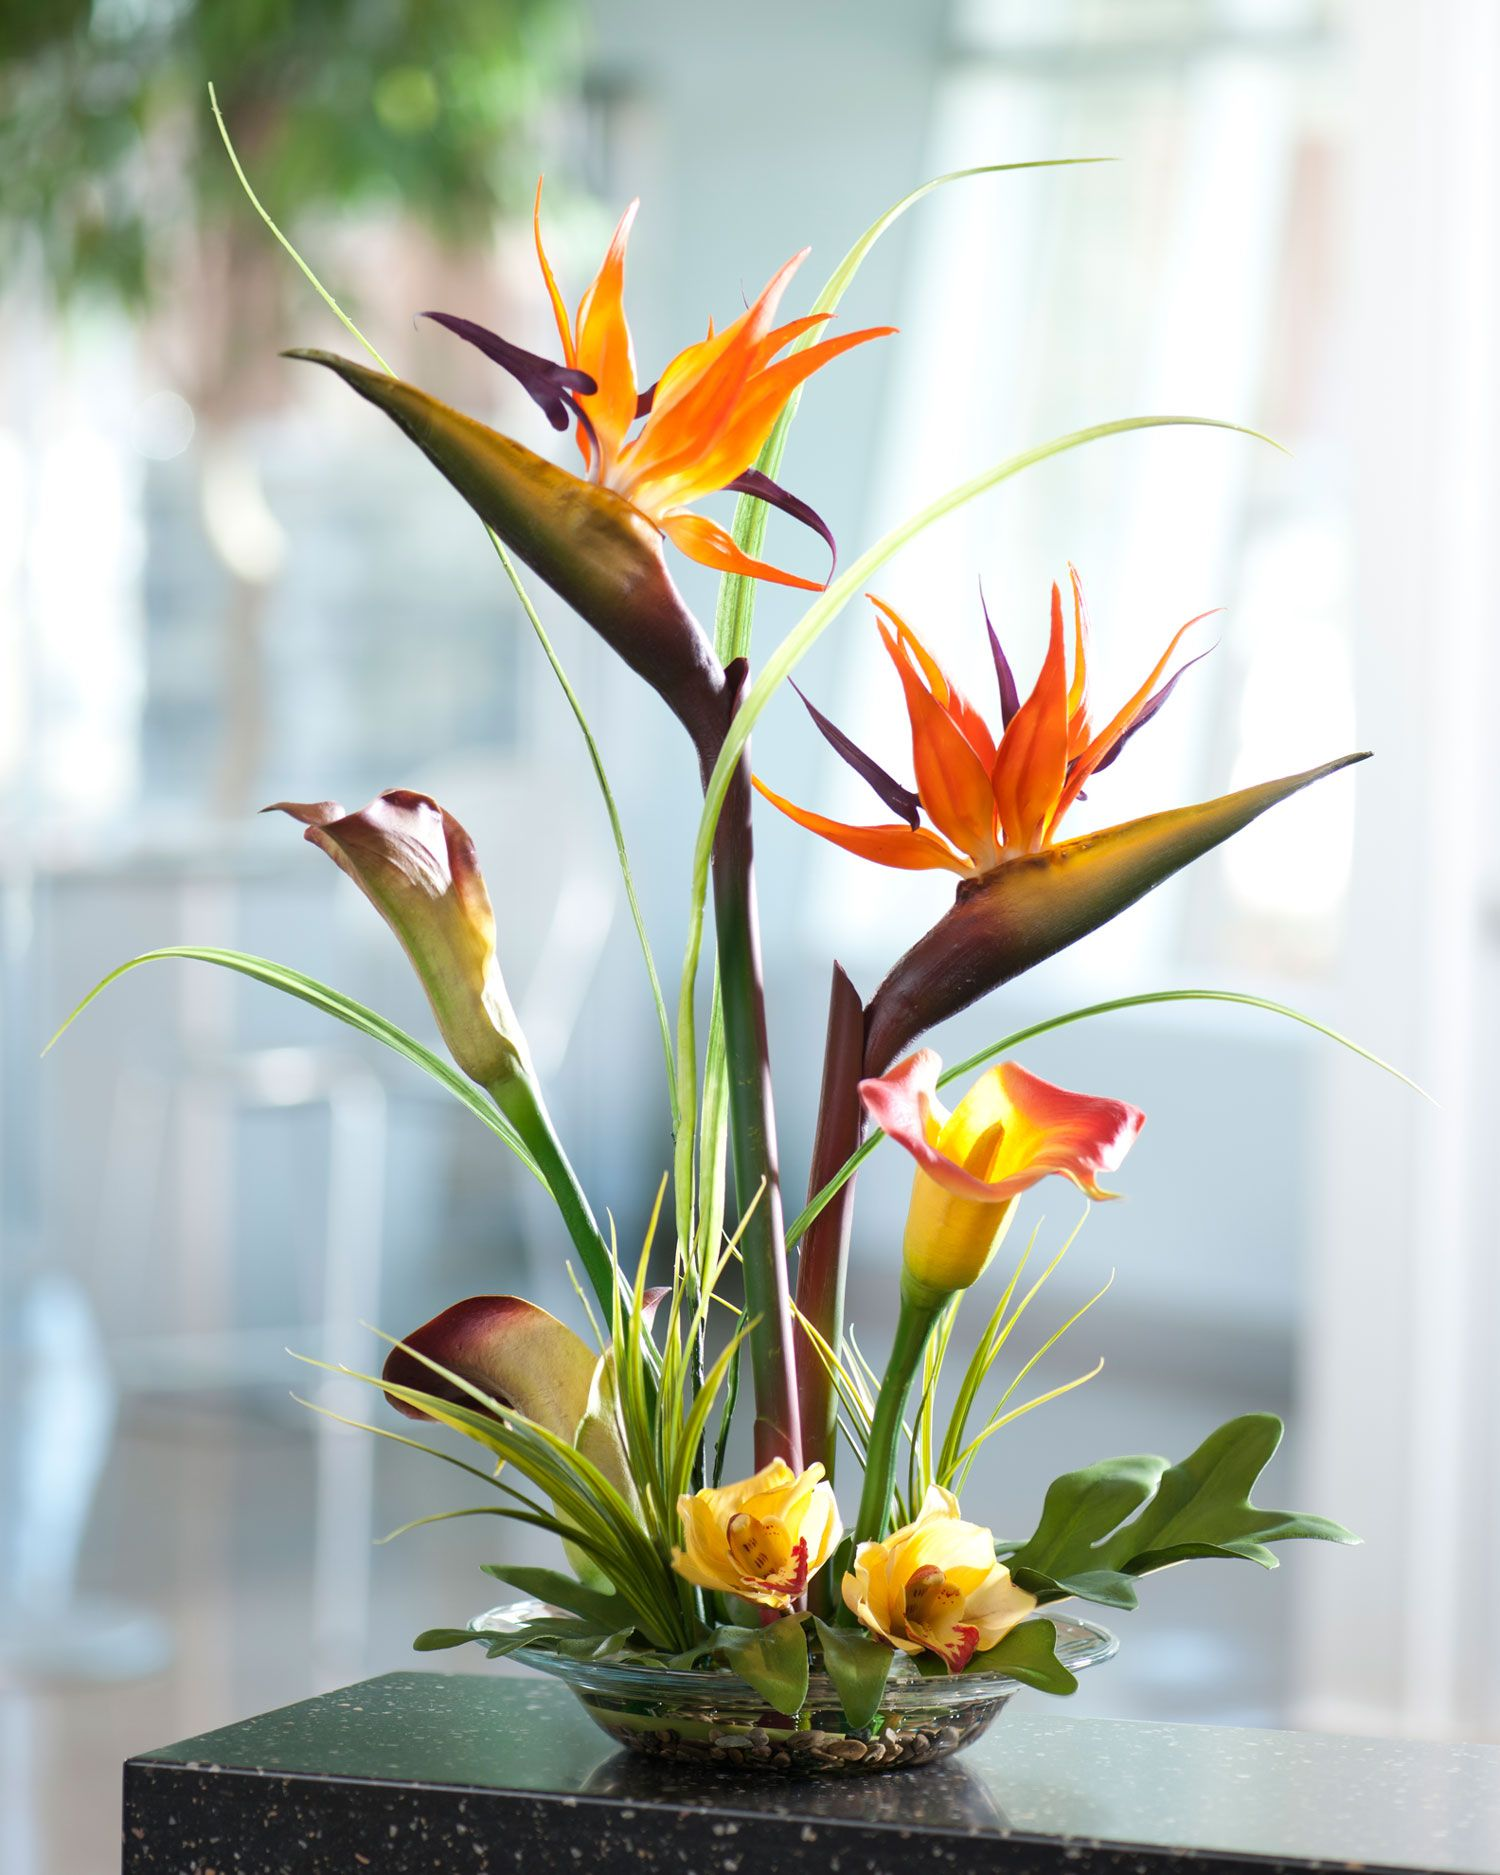 An Intricate Design Of Birds Paradise And Calla Lilies Interwoven Into The Fingers A